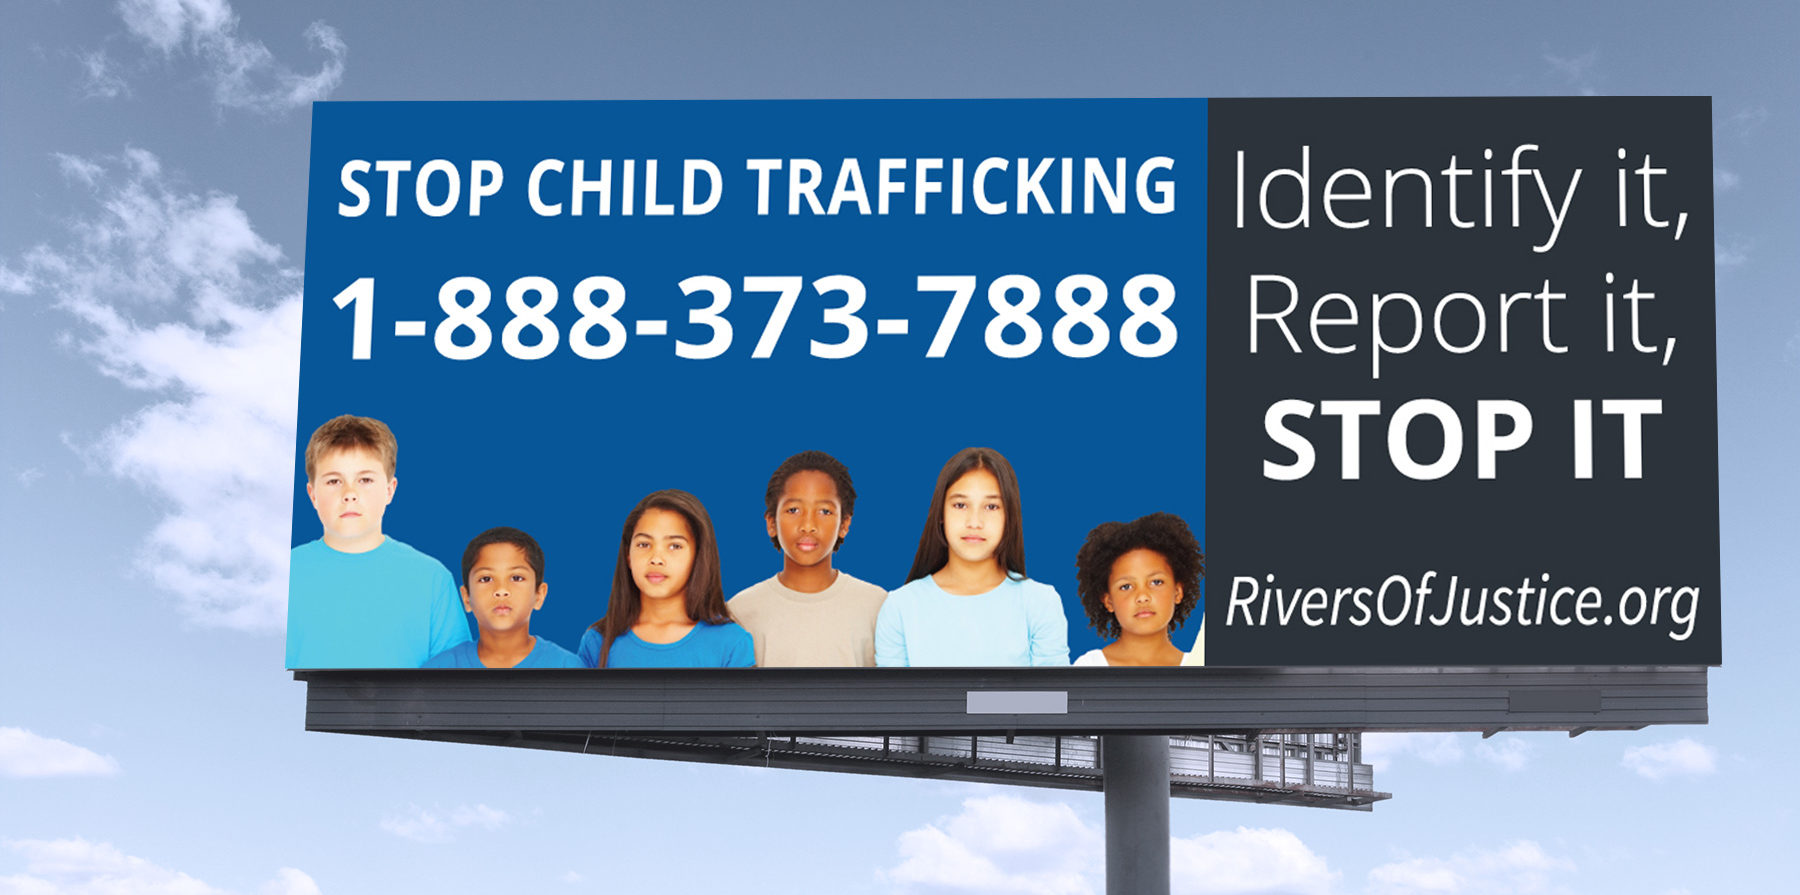 billboard with child trafficking hotline